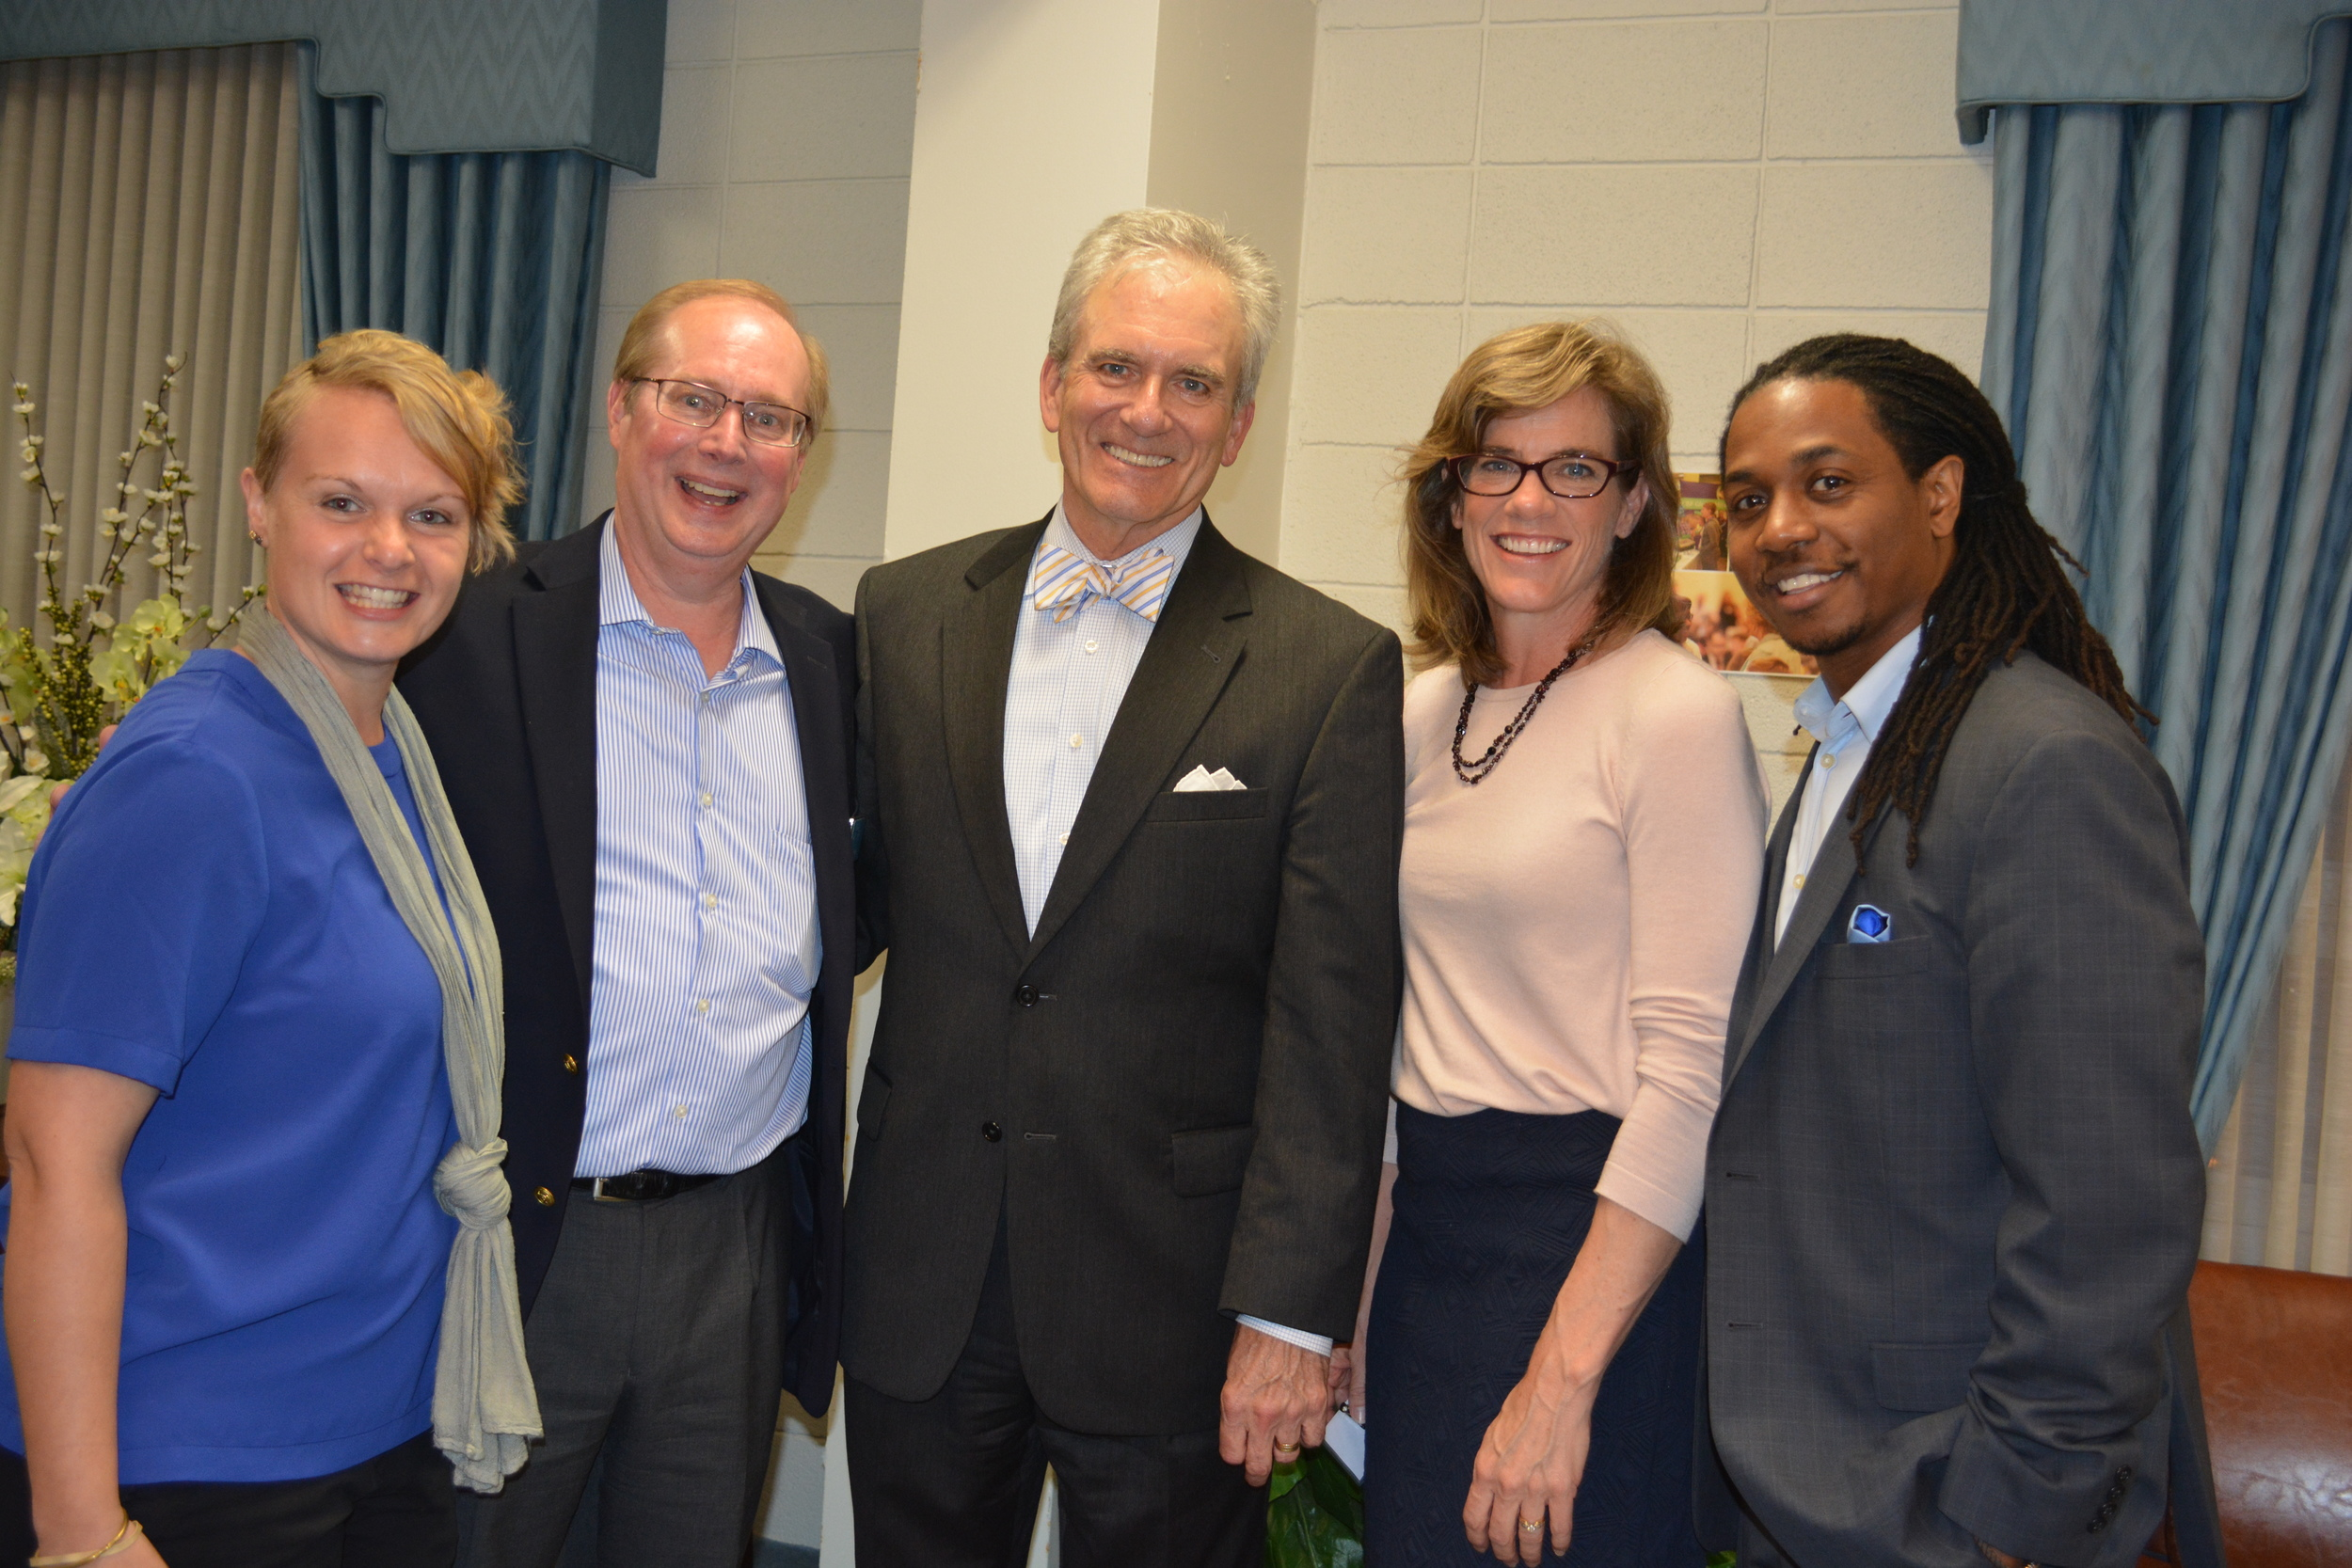 L to R: Megan Pike, CBFAR Associate Coordinator; Ray Higgins, CBFAR Coordinator; Brent Walker, BJC Executive Director; Holly Hollman, BJC Associate Executive Director; and Charles Watson, Jr., BJC Education and Outreach Specialist. CBFAR hosted a reception after the Friday evening session in Hyde Parlor at Pulaski Heights Baptist.  For more photos from the weekend  click here .